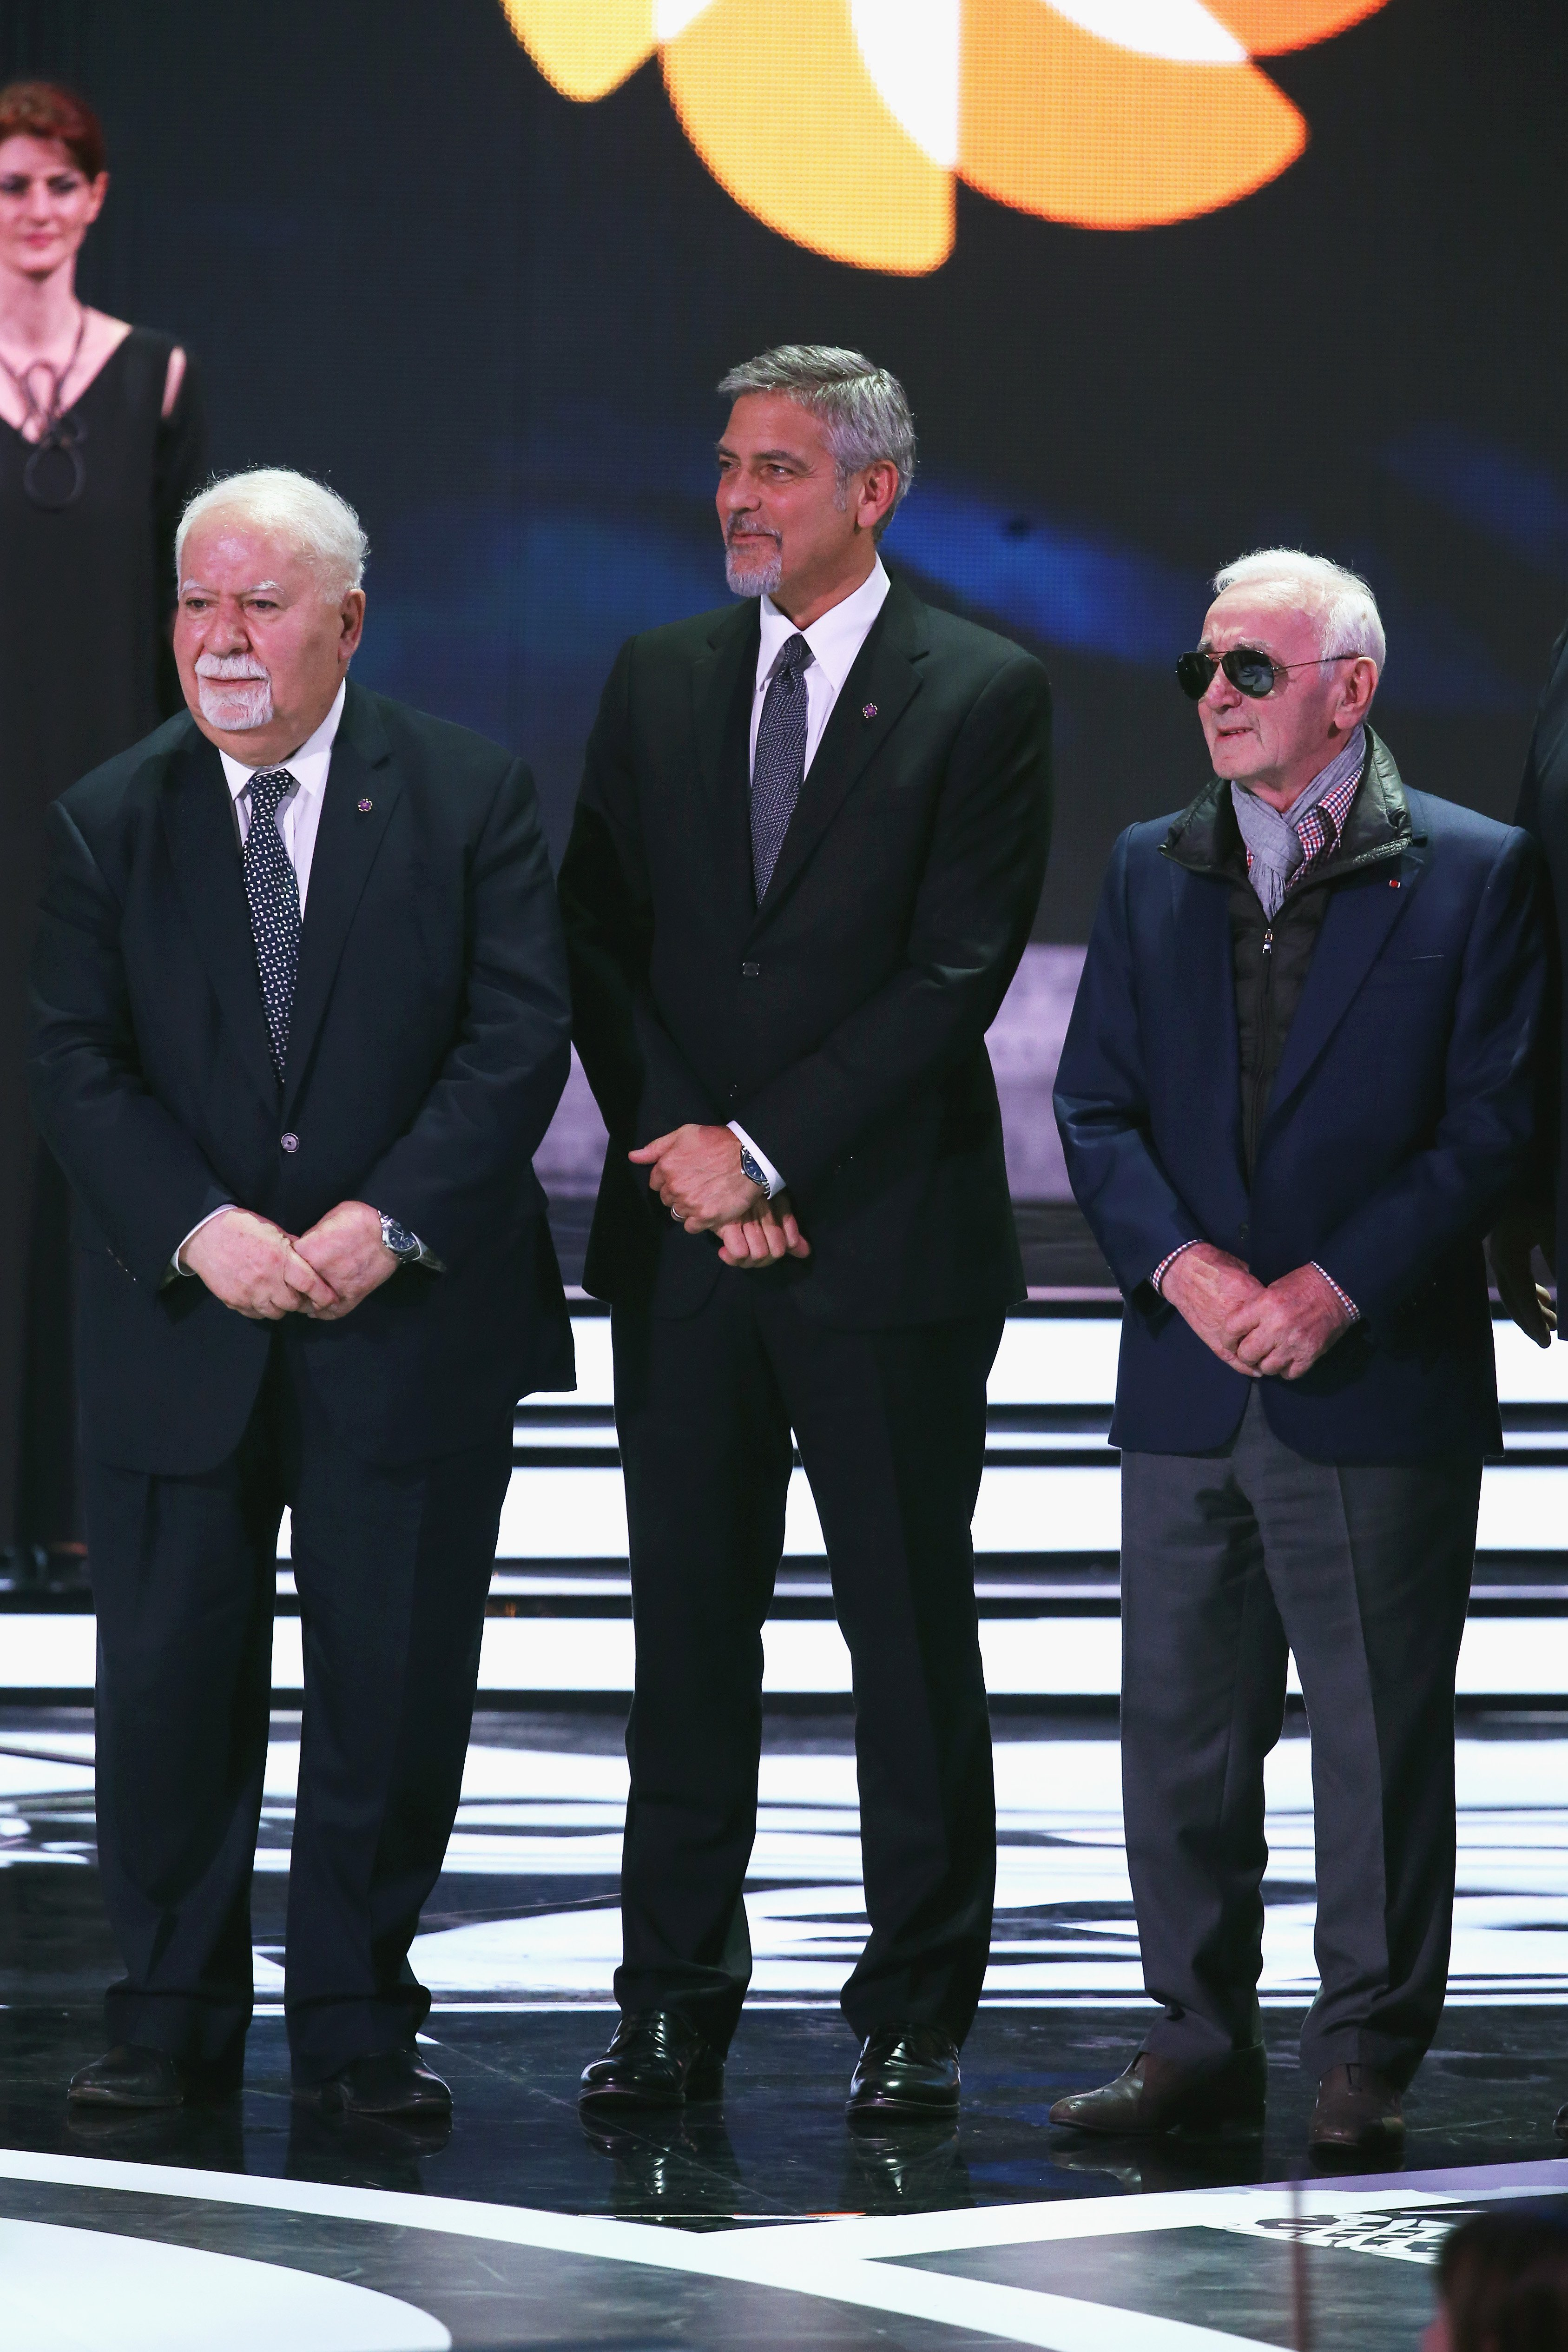 Aurora_Prize_co-founder_Vartan_Gregorian_Selection_Comittee_Co-Chair_George_Clooney_and_musician_Charles_Aznavour_on_stage_at_the_Aurora_Prize_Ceremony.JPG